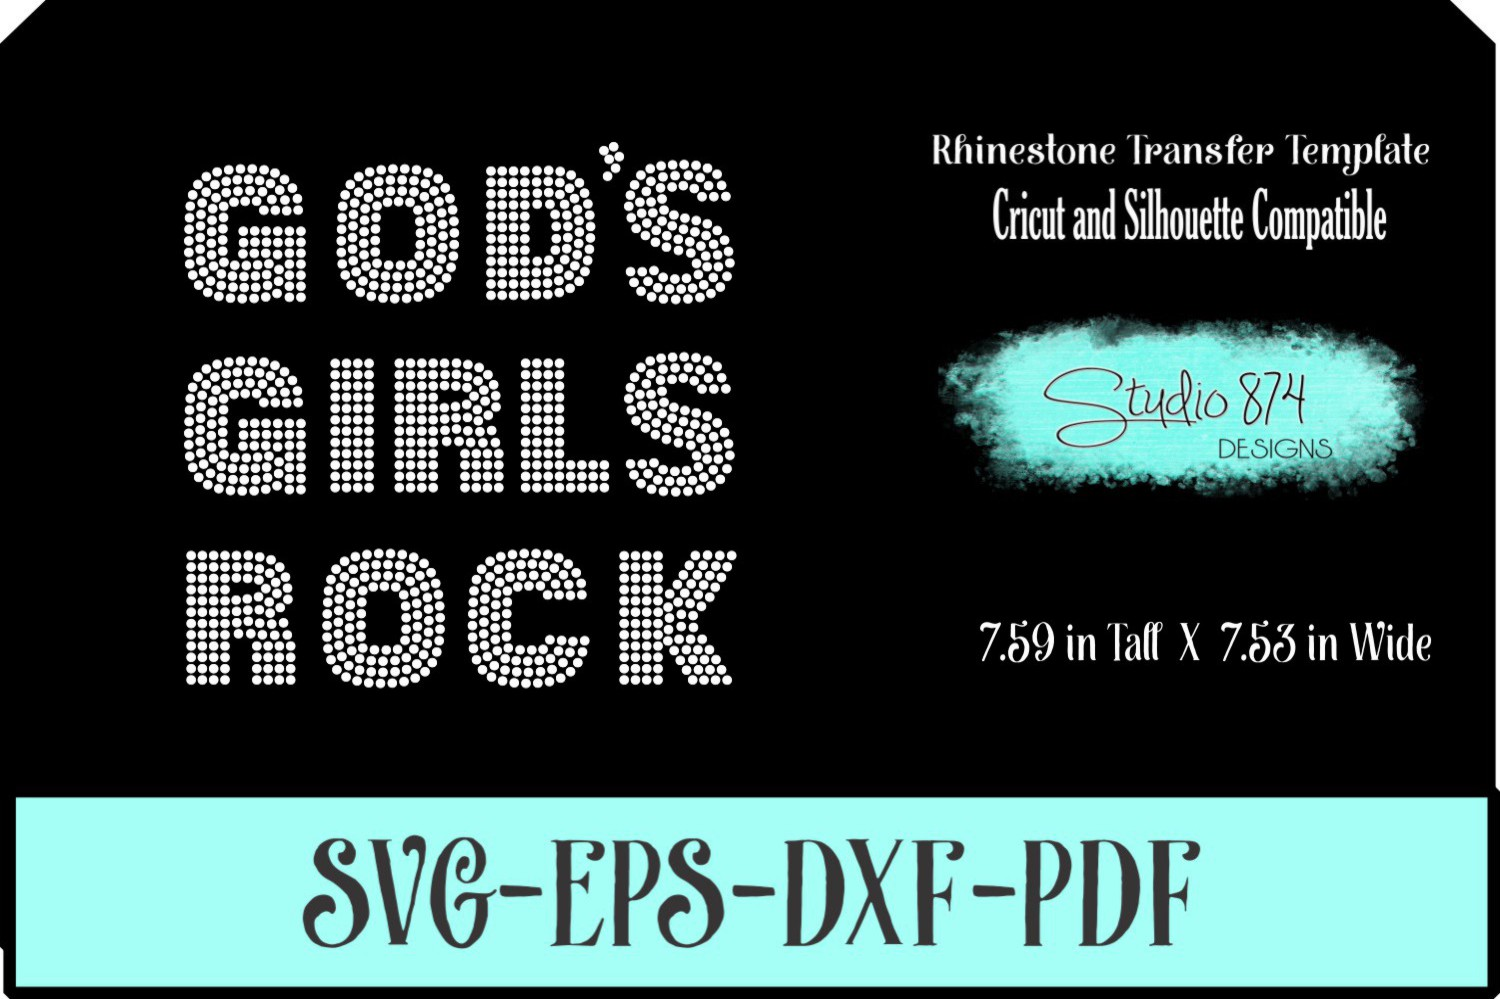 Faith Religious Rhinestone SVG Template - Gods Girls Rock example image 1